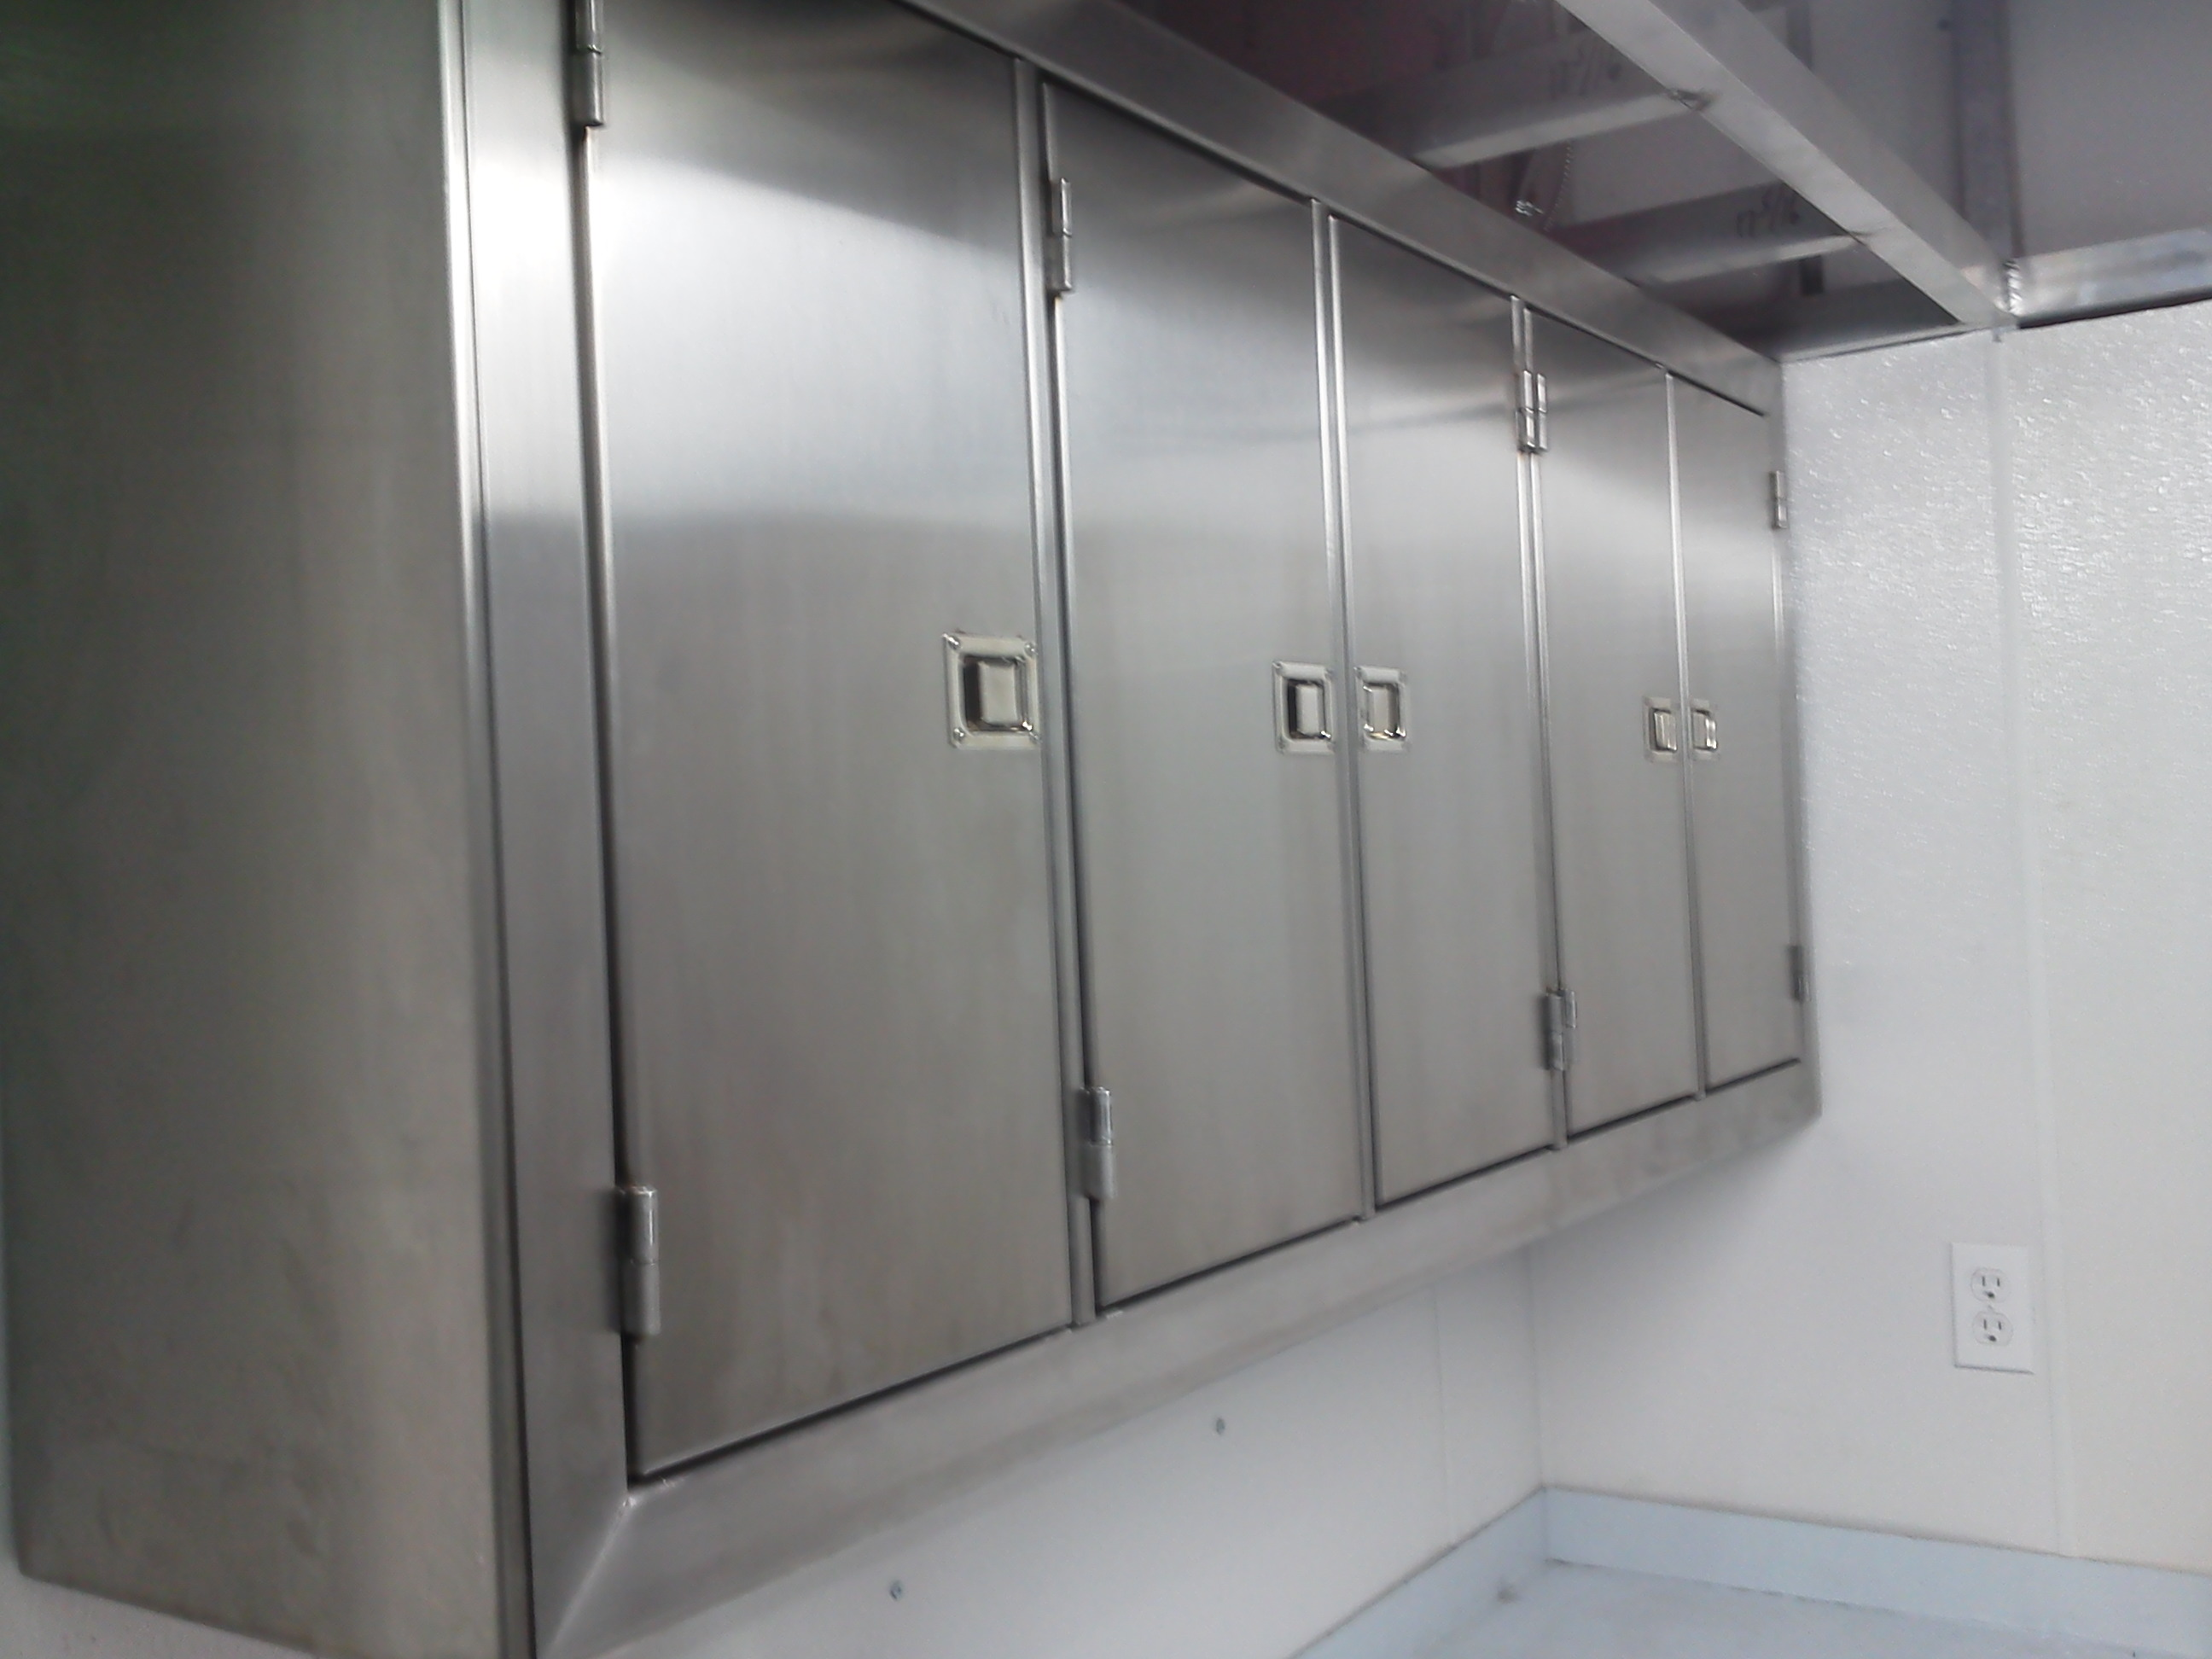 Traditional Stainless Steel Cabinet Stainless Steel Cabinet Comfort Engineers Manufacturing Division Stainless Steel Cabinets On Wheels Stainless Steel Cabinets Bbq houzz 01 Stainless Steel Cabinets